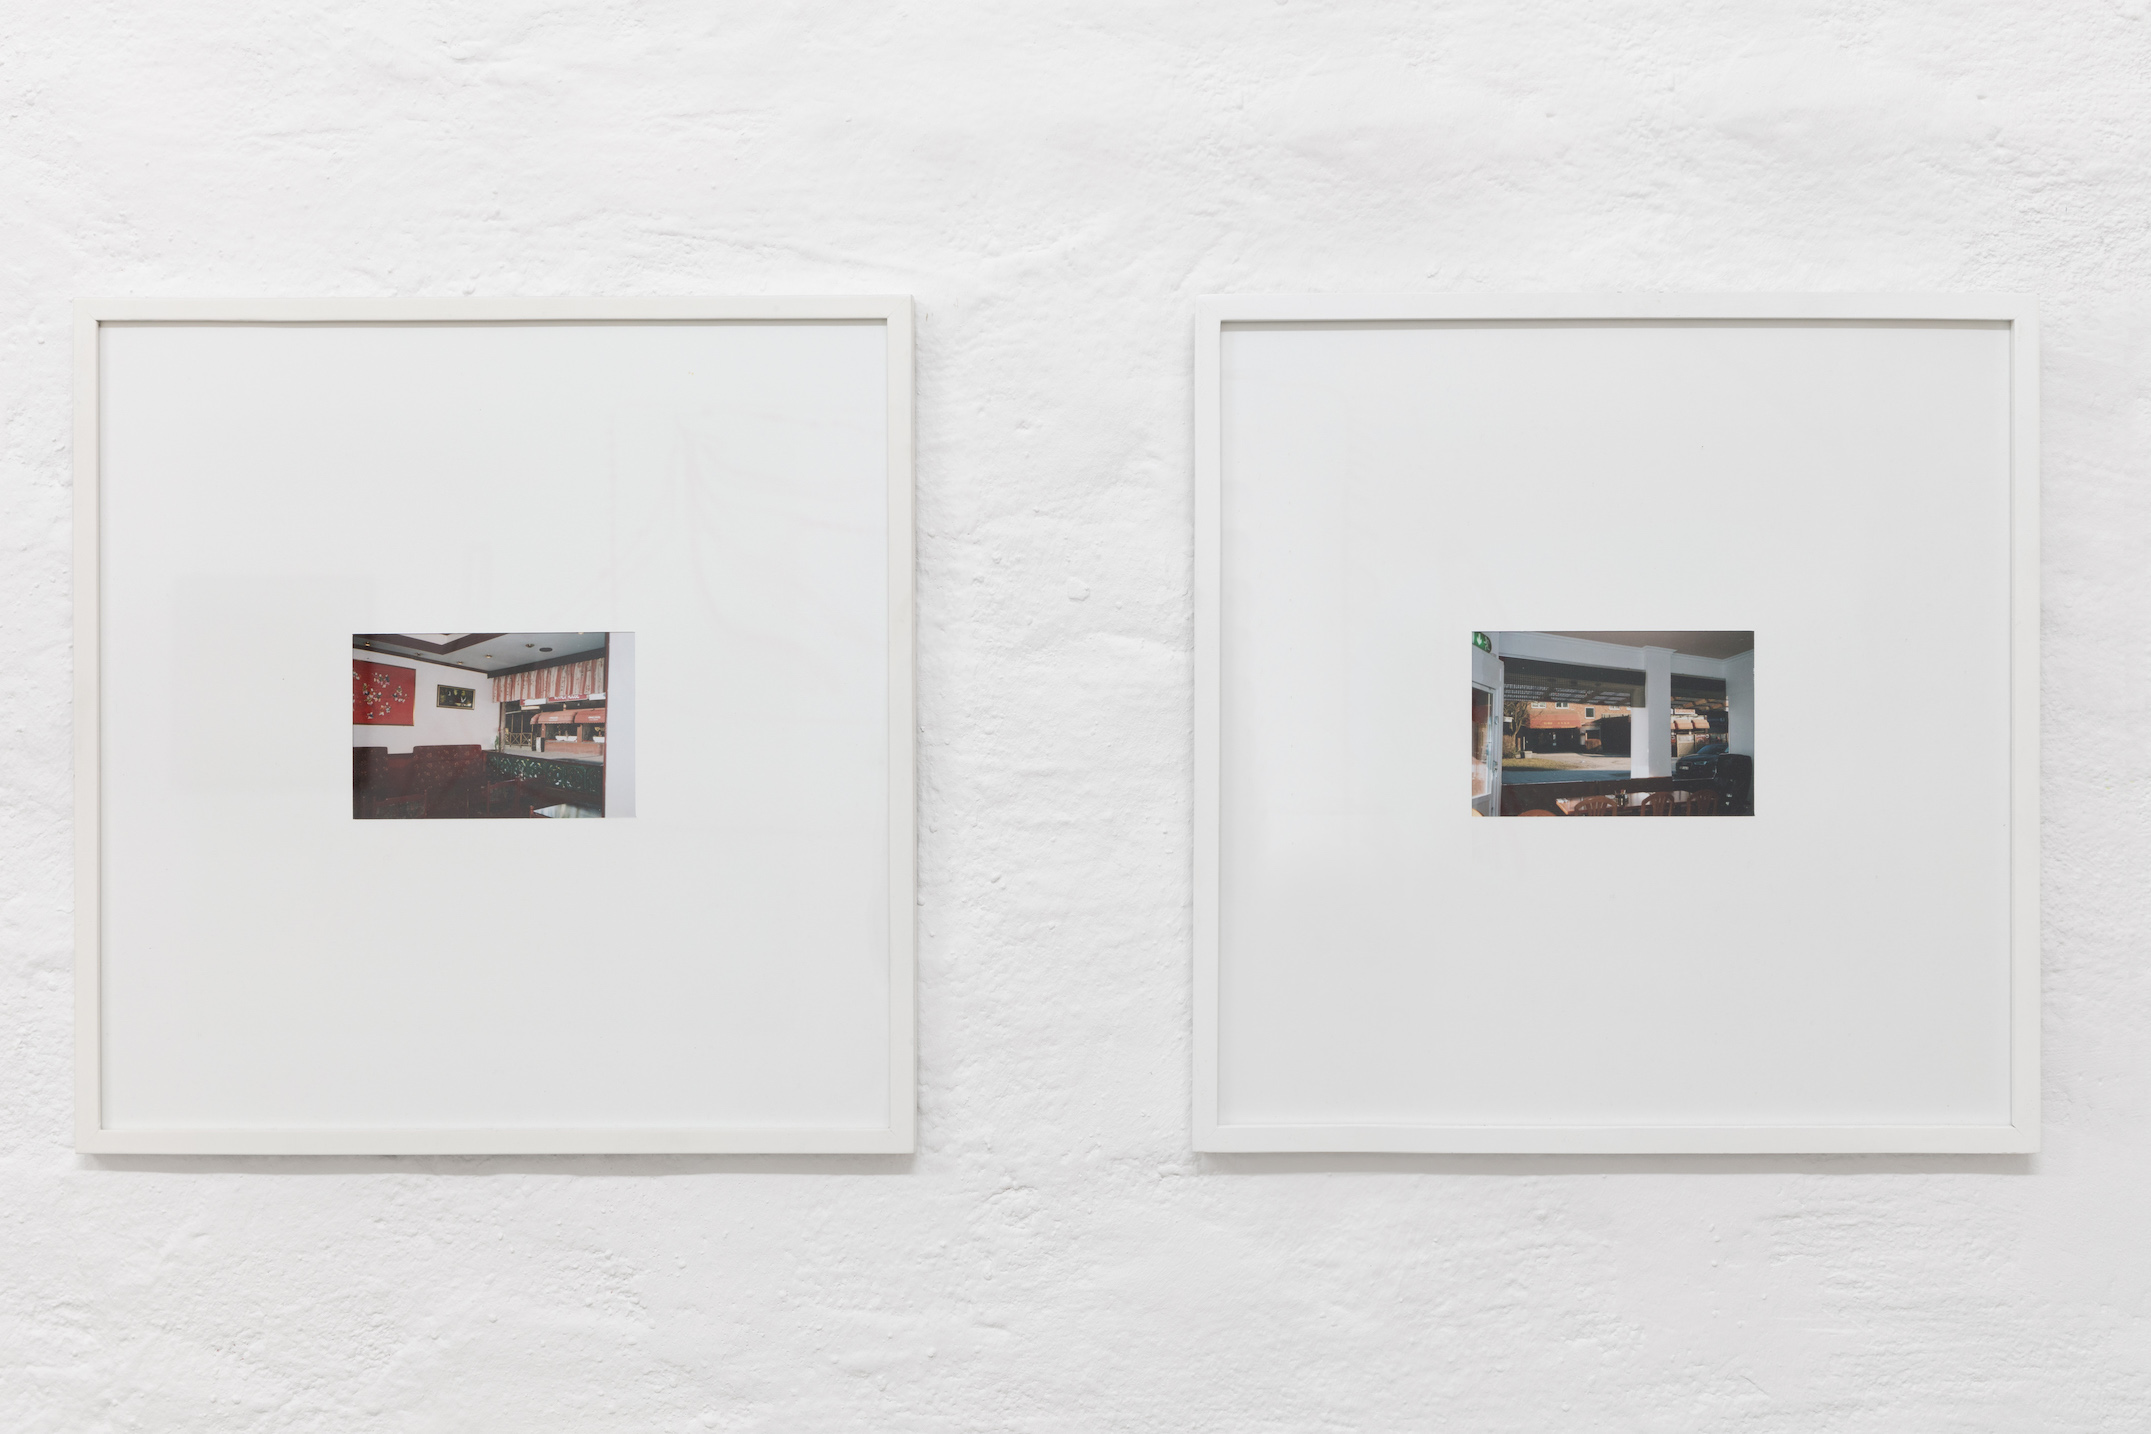 Lap-See Lam, Wang with a View of Winner House, 2015, Montage; Winner House with a View of Ho Wah, 2015, Montage